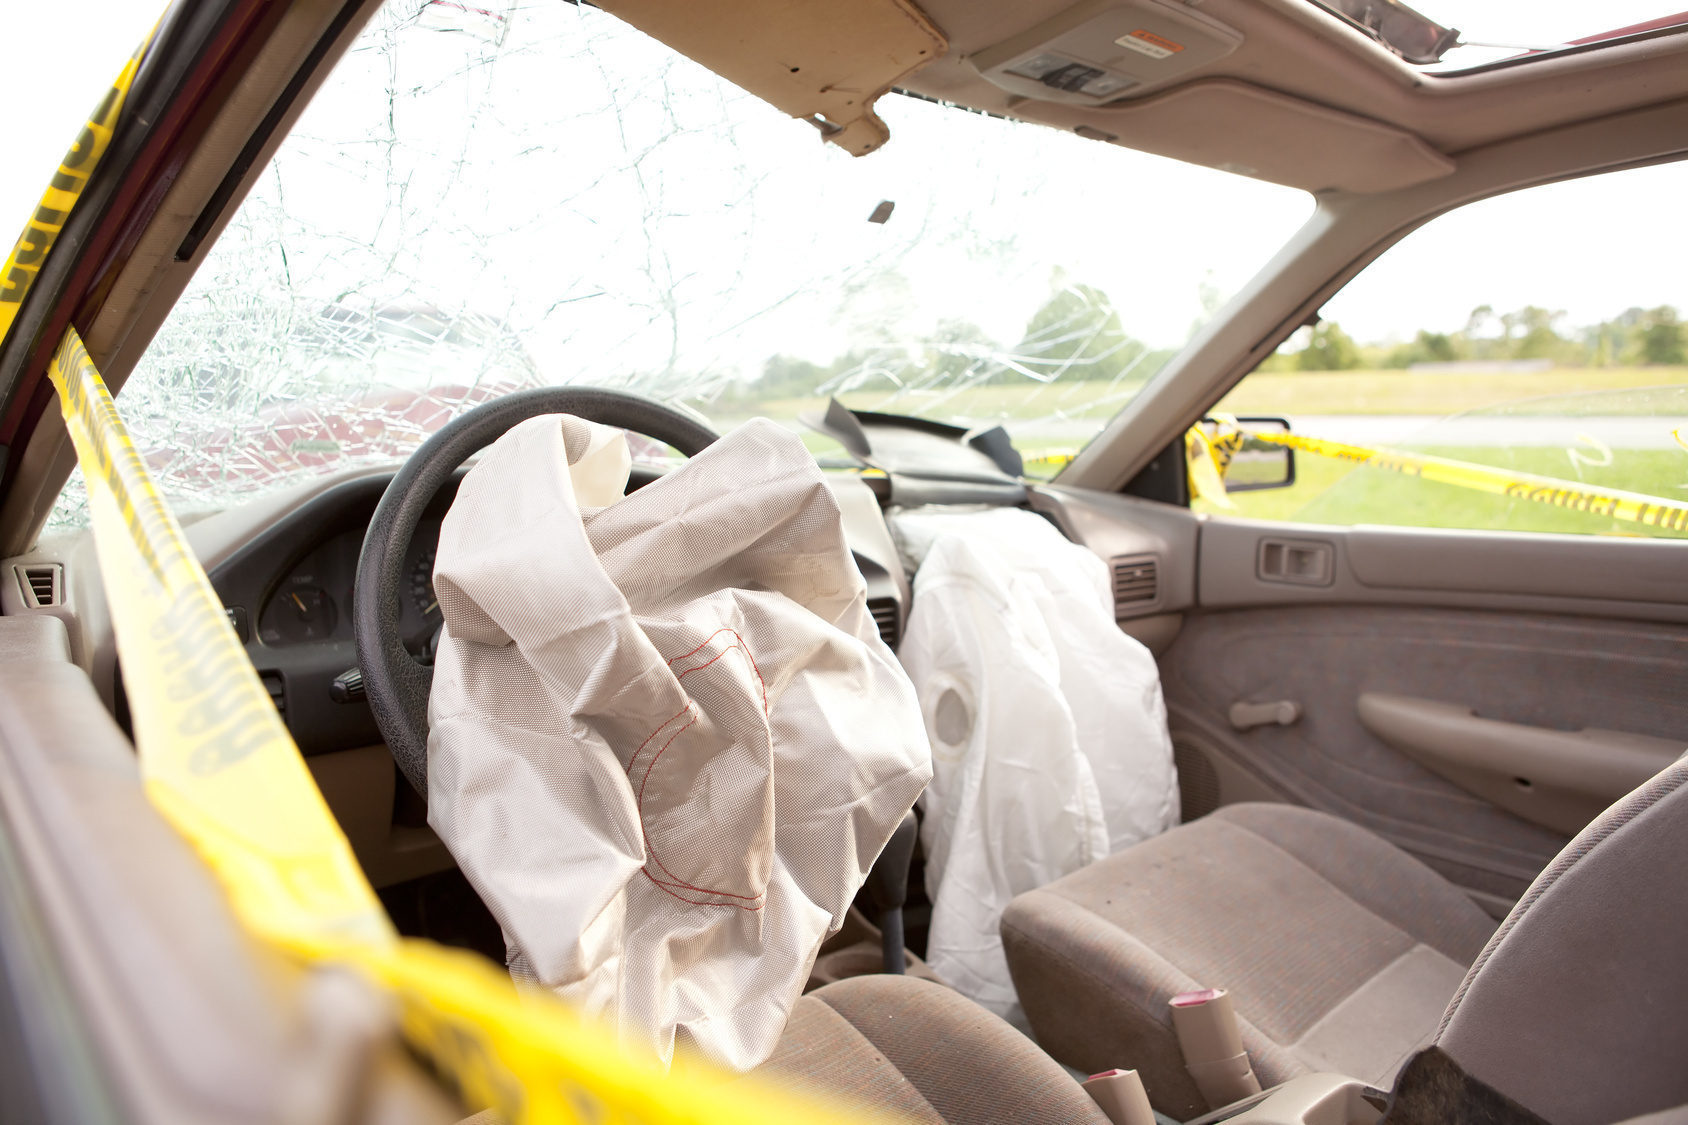 Honda Accord: Additional Information About Your Airbags